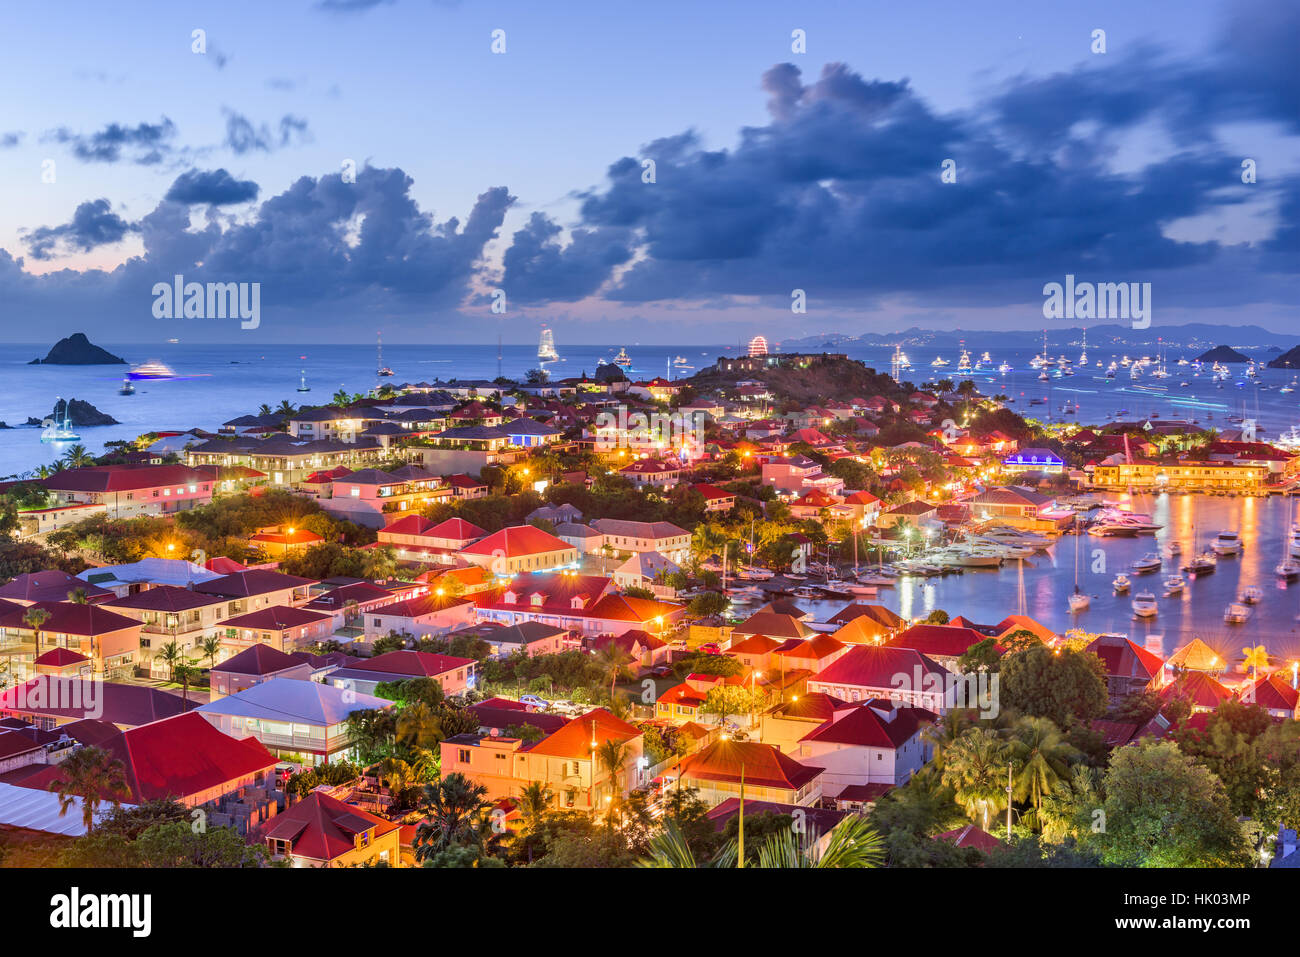 Saint Barthelemy skyline and harbor in the West Indies. Stock Photo